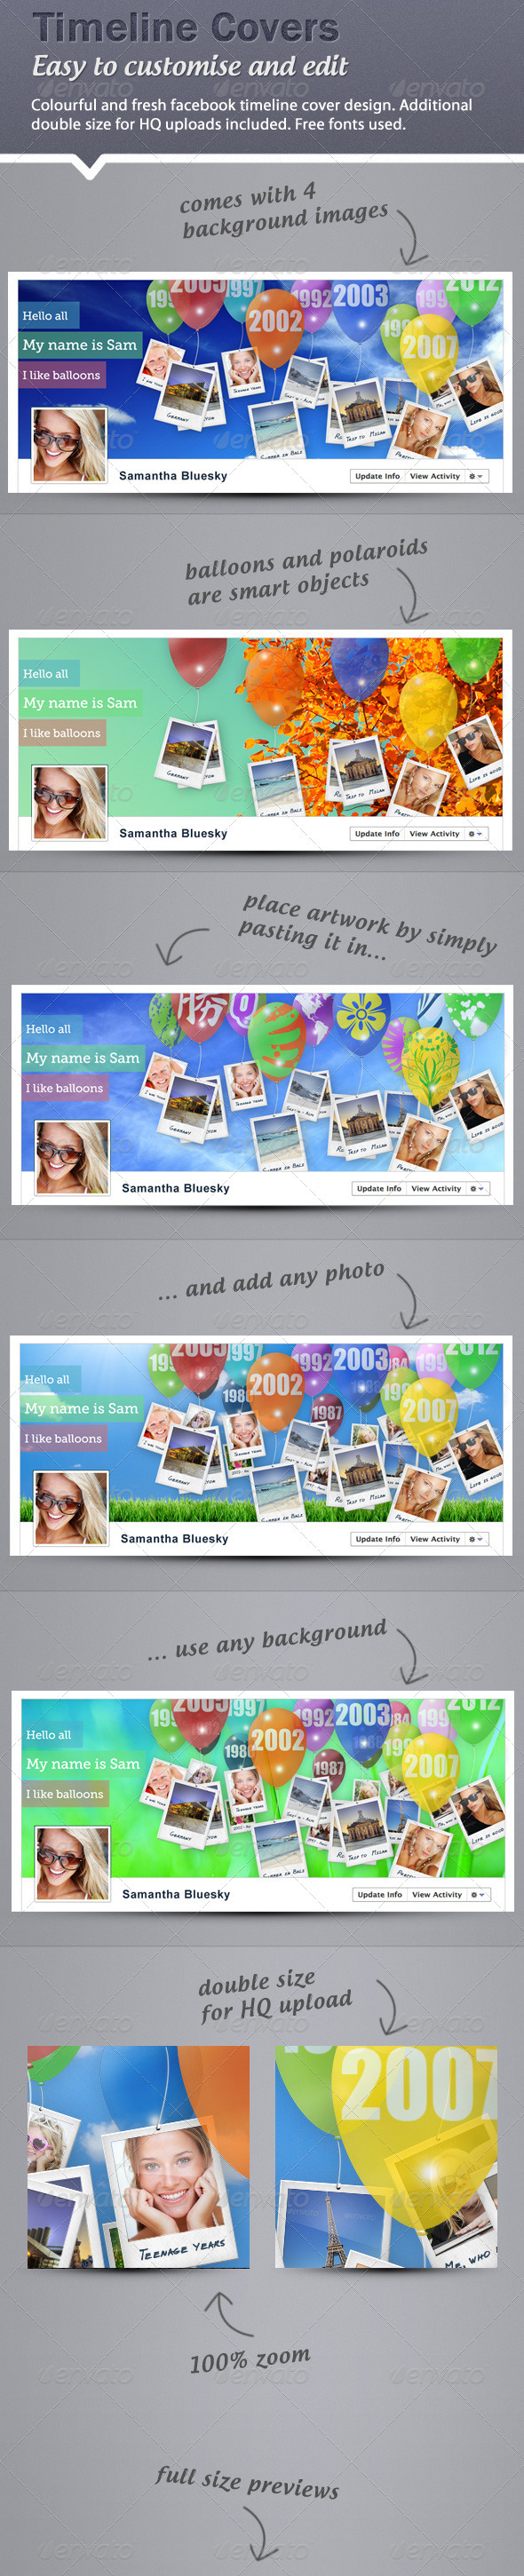 Timeline Cover - Balloons and Polaroids - Facebook Timeline Covers Social Media